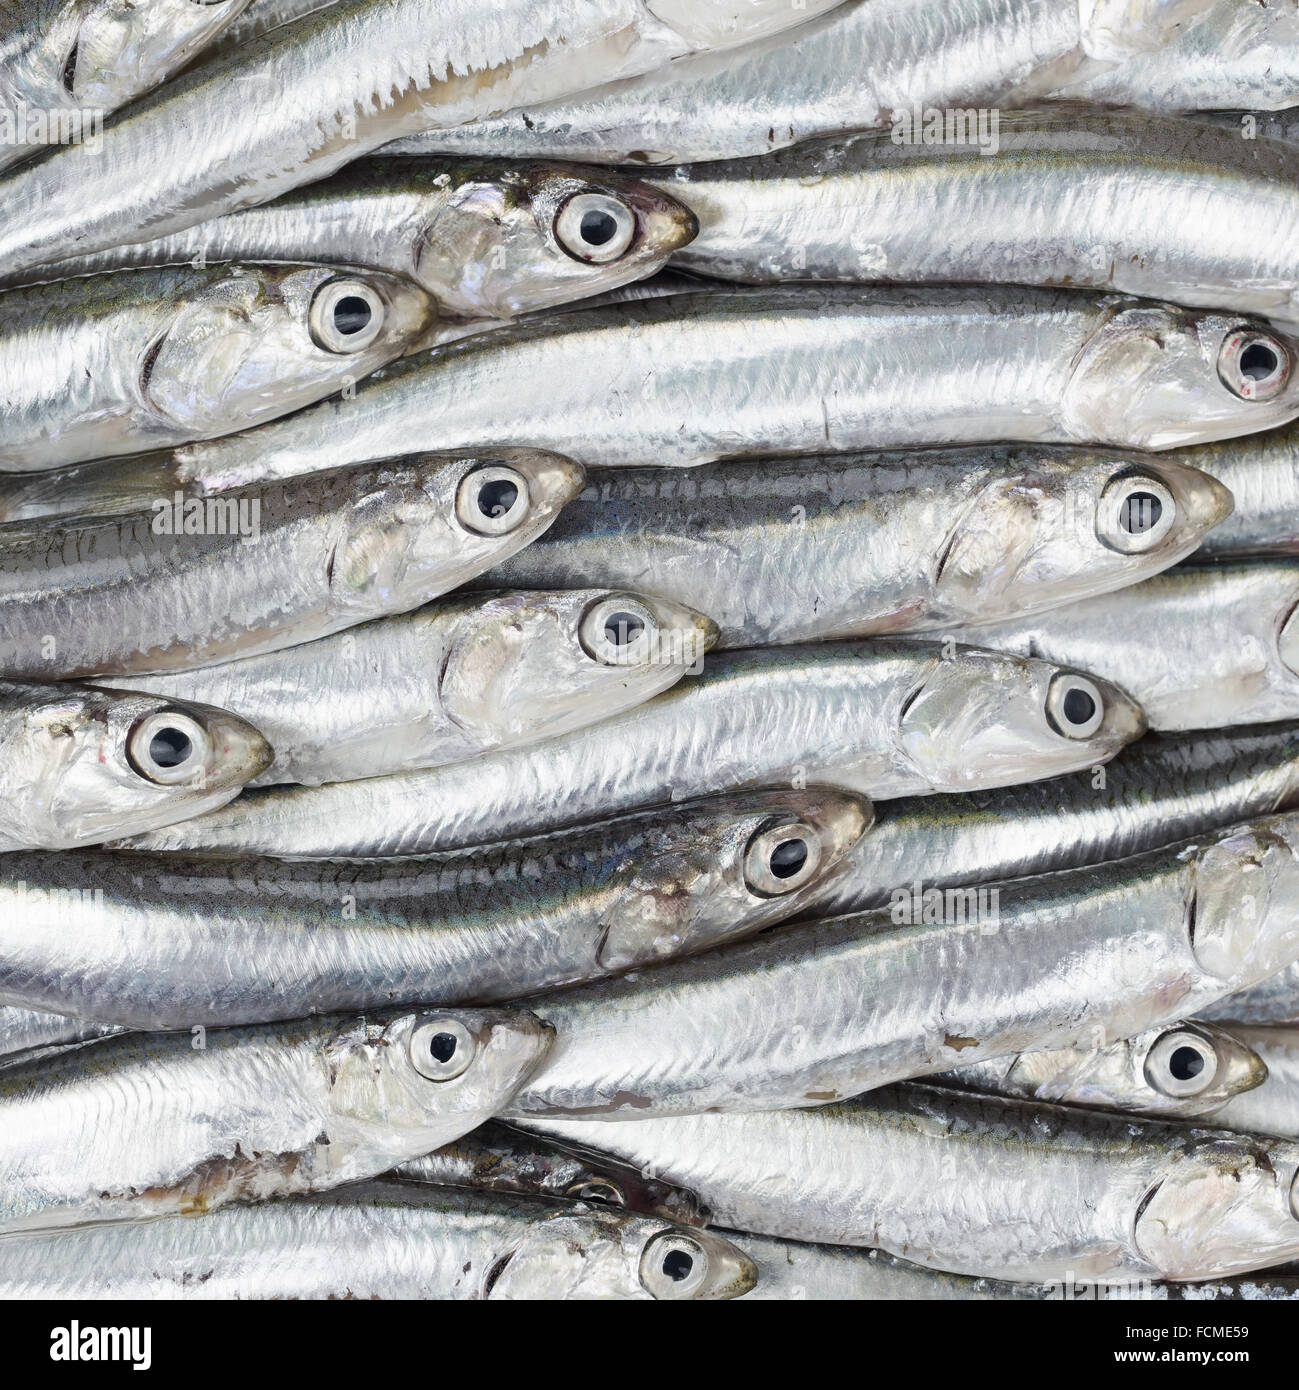 Fresh anchovies prepared seafood background texture or pattern. Raw food. - Stock Image